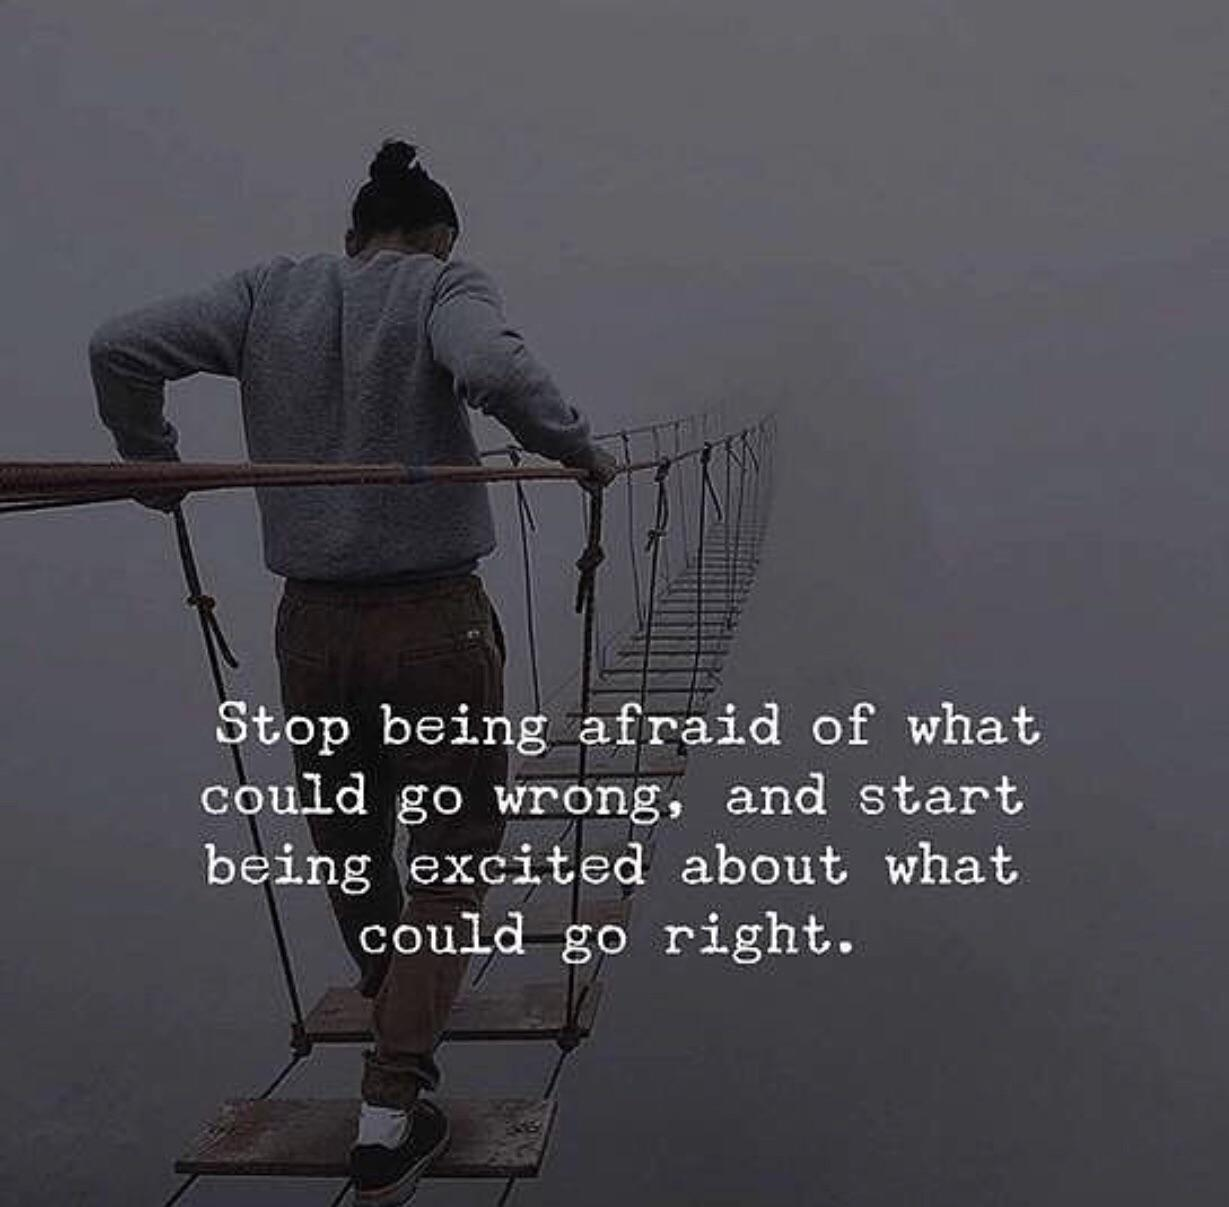 [Image] Why are you so afraid….